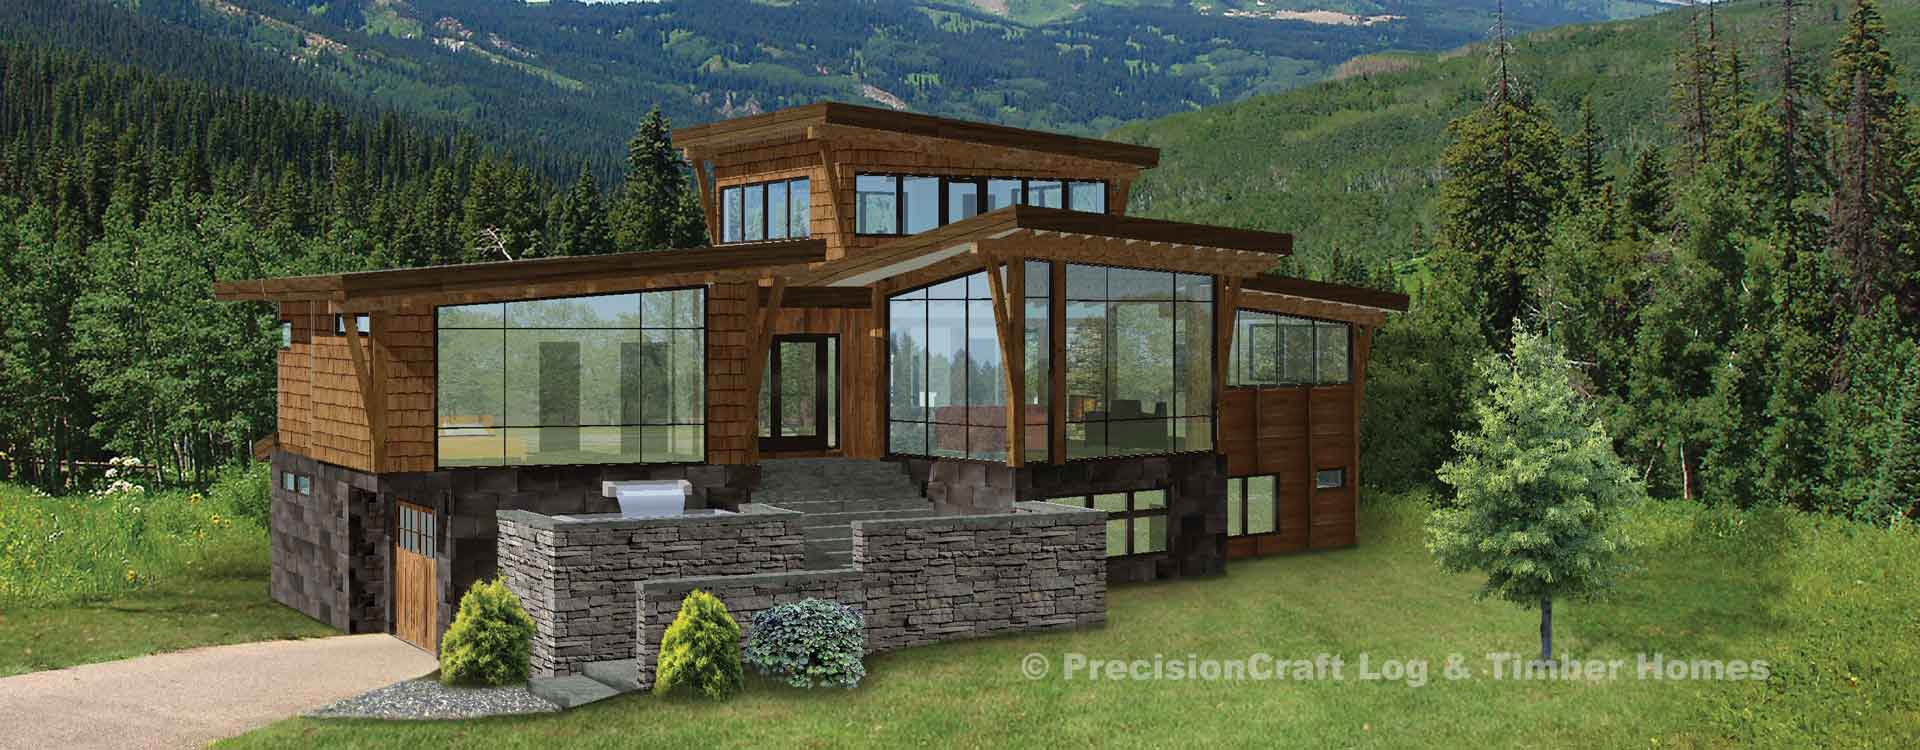 Crescent rim modern timber frame plan for Contemporary timber frame home plans